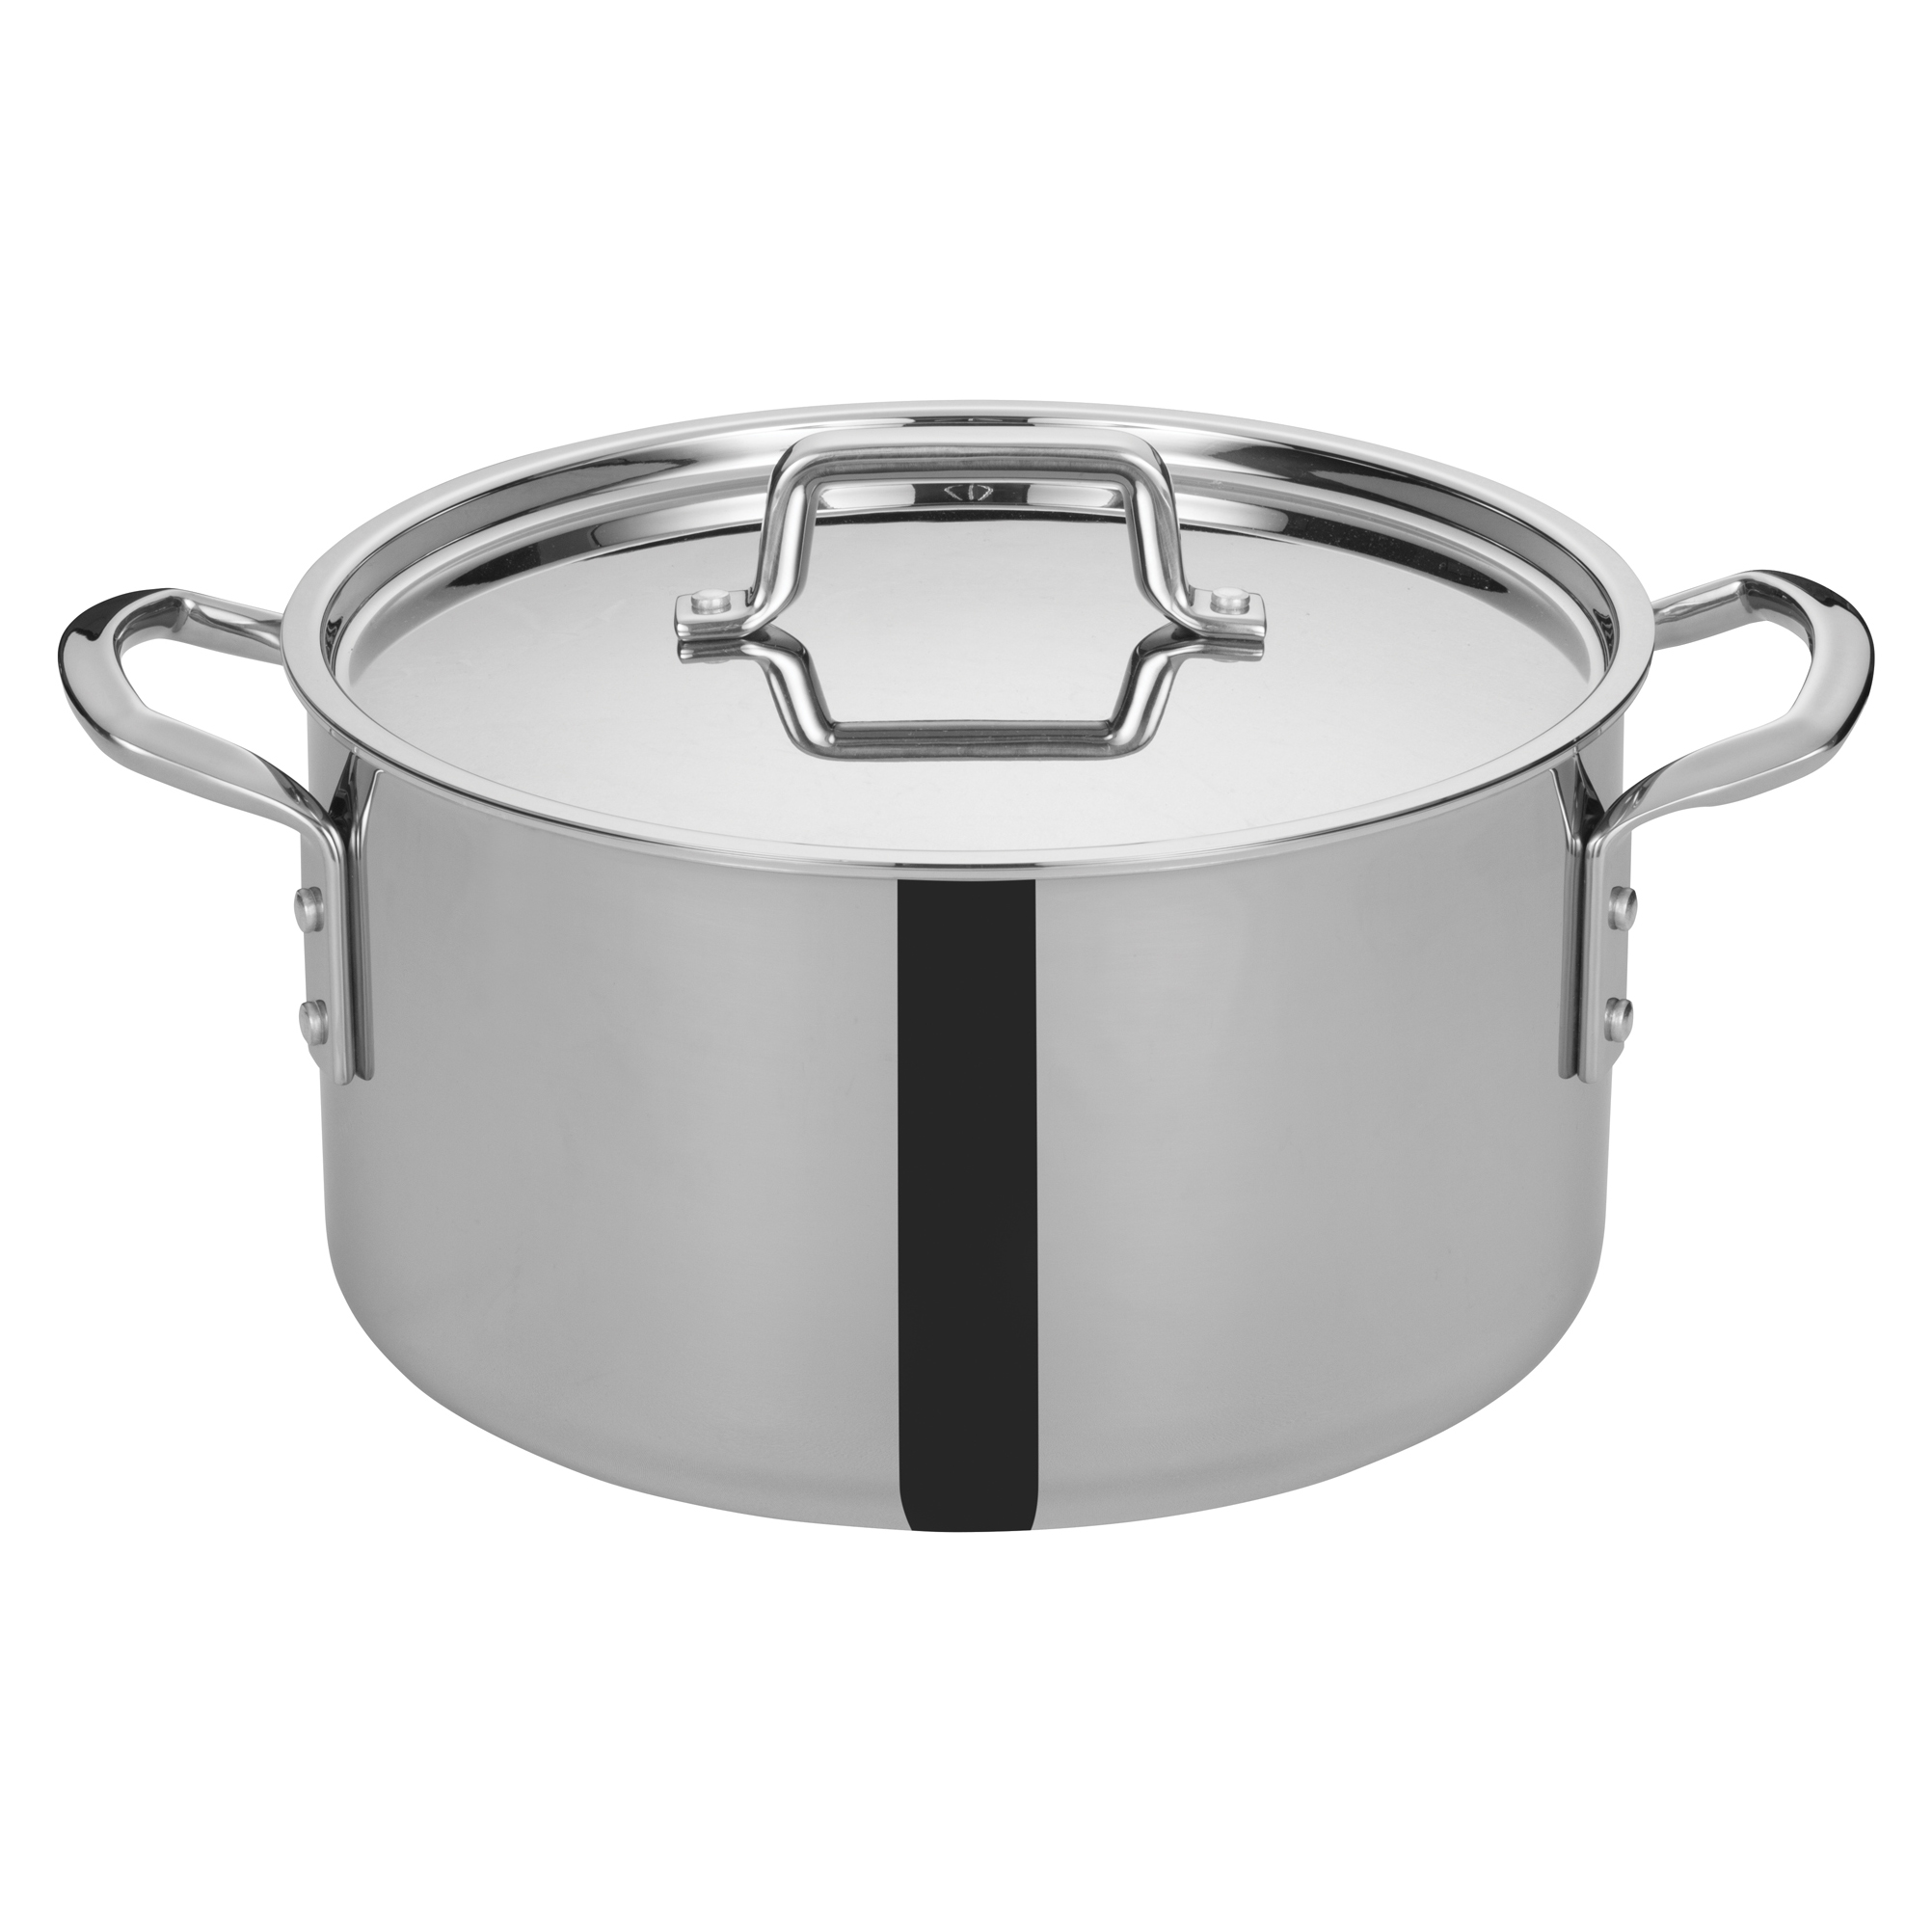 Winco TGSP-12 stock pot